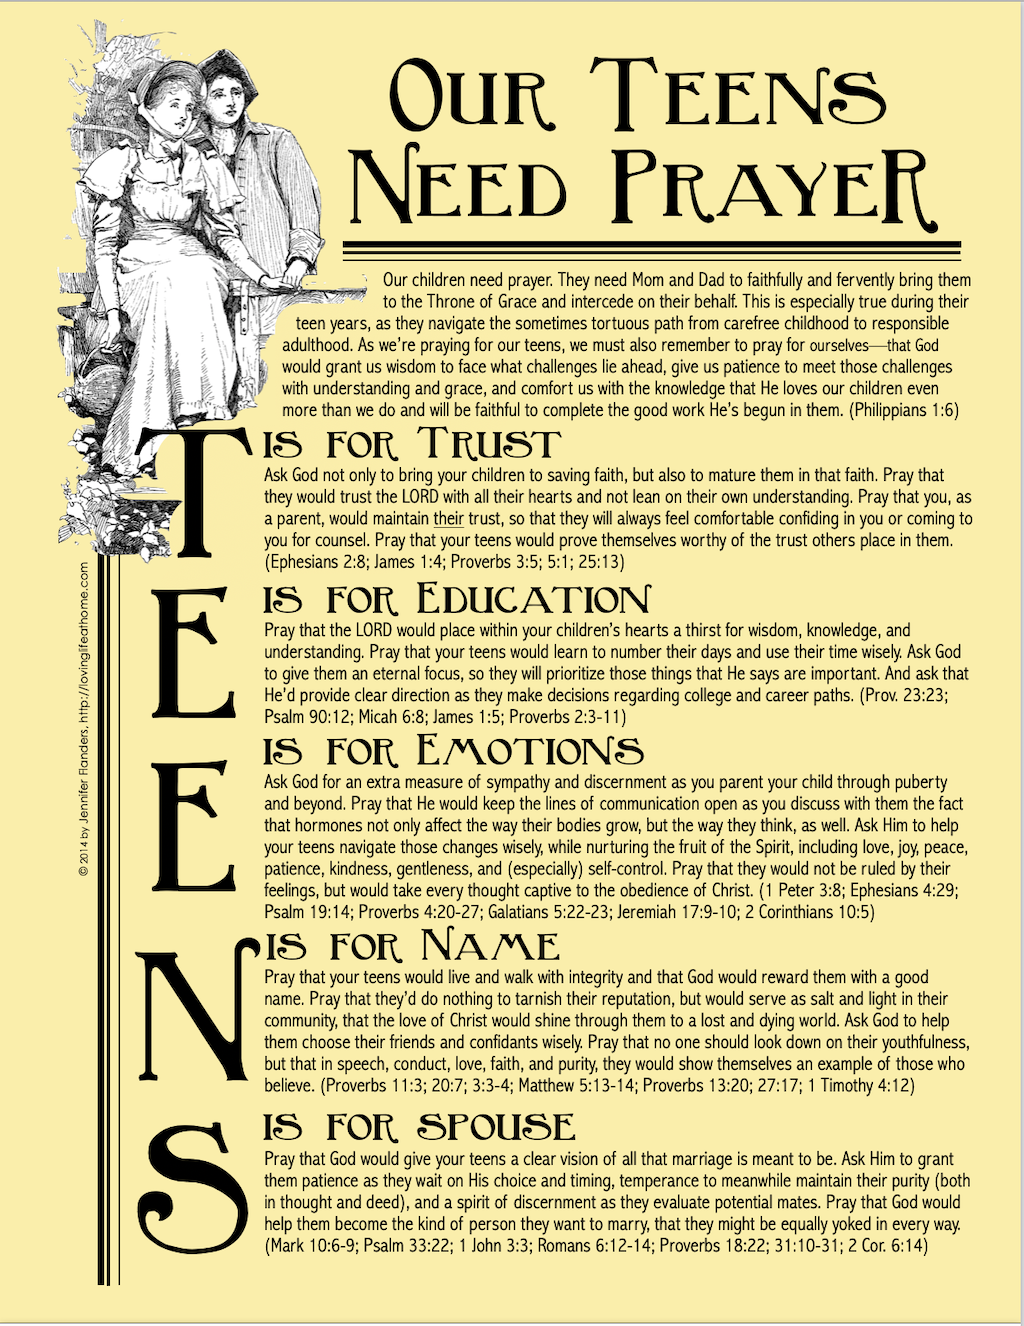 Our Teens Need Prayer